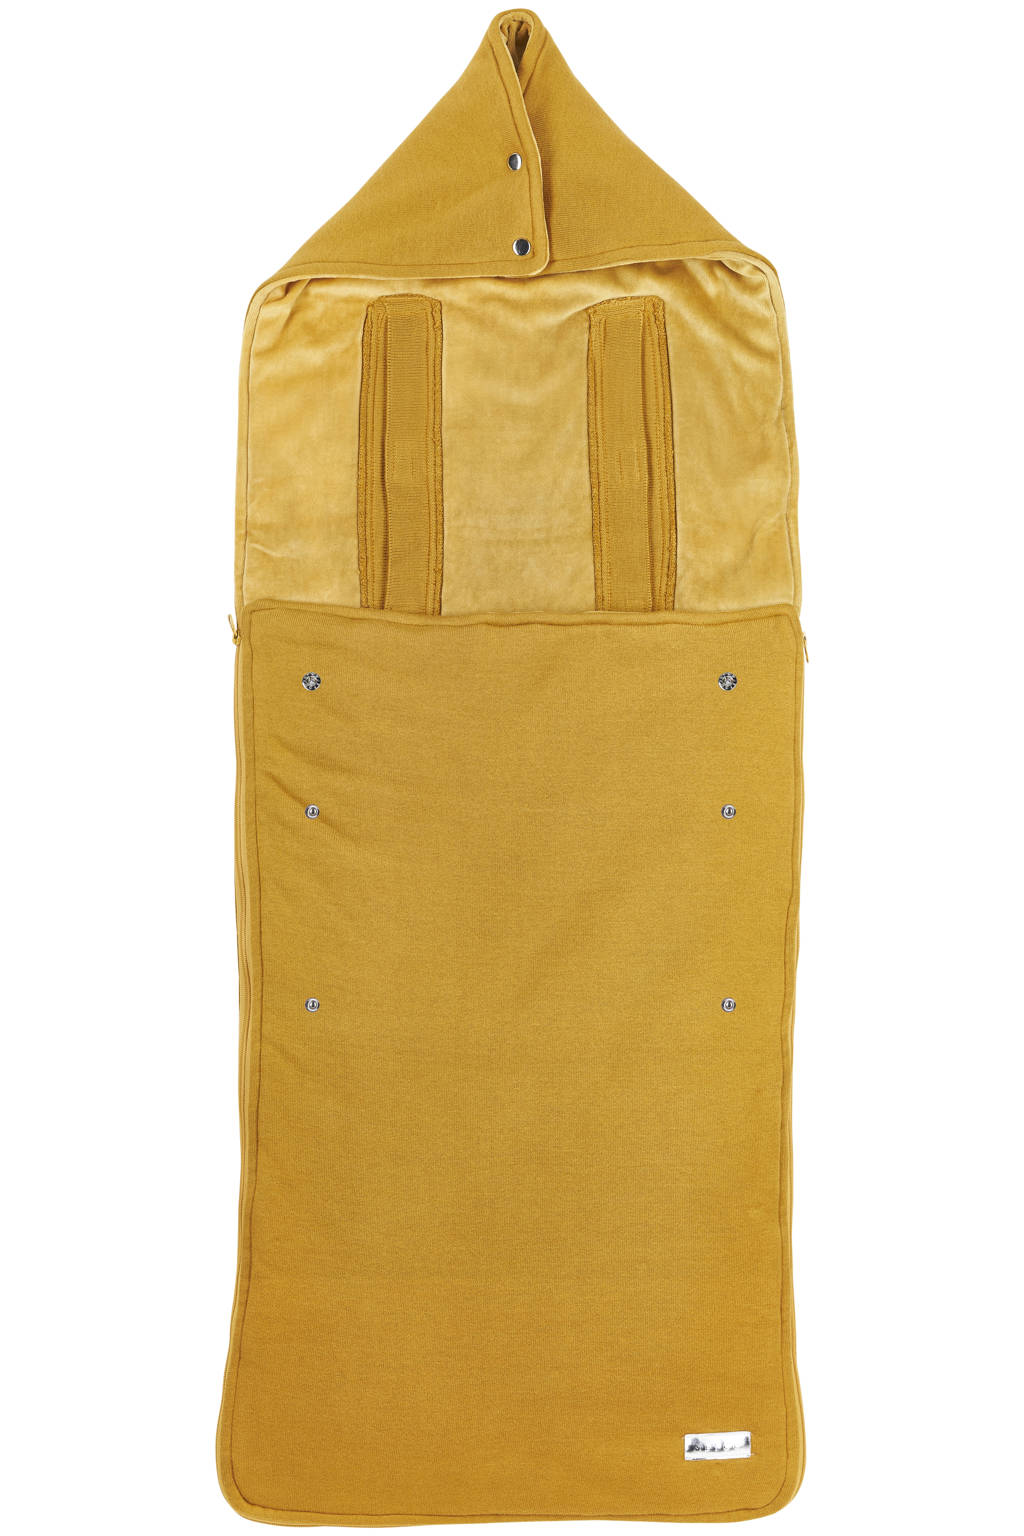 Meyco gebreide buggy voetenzak Knit basic honey gold, Goud